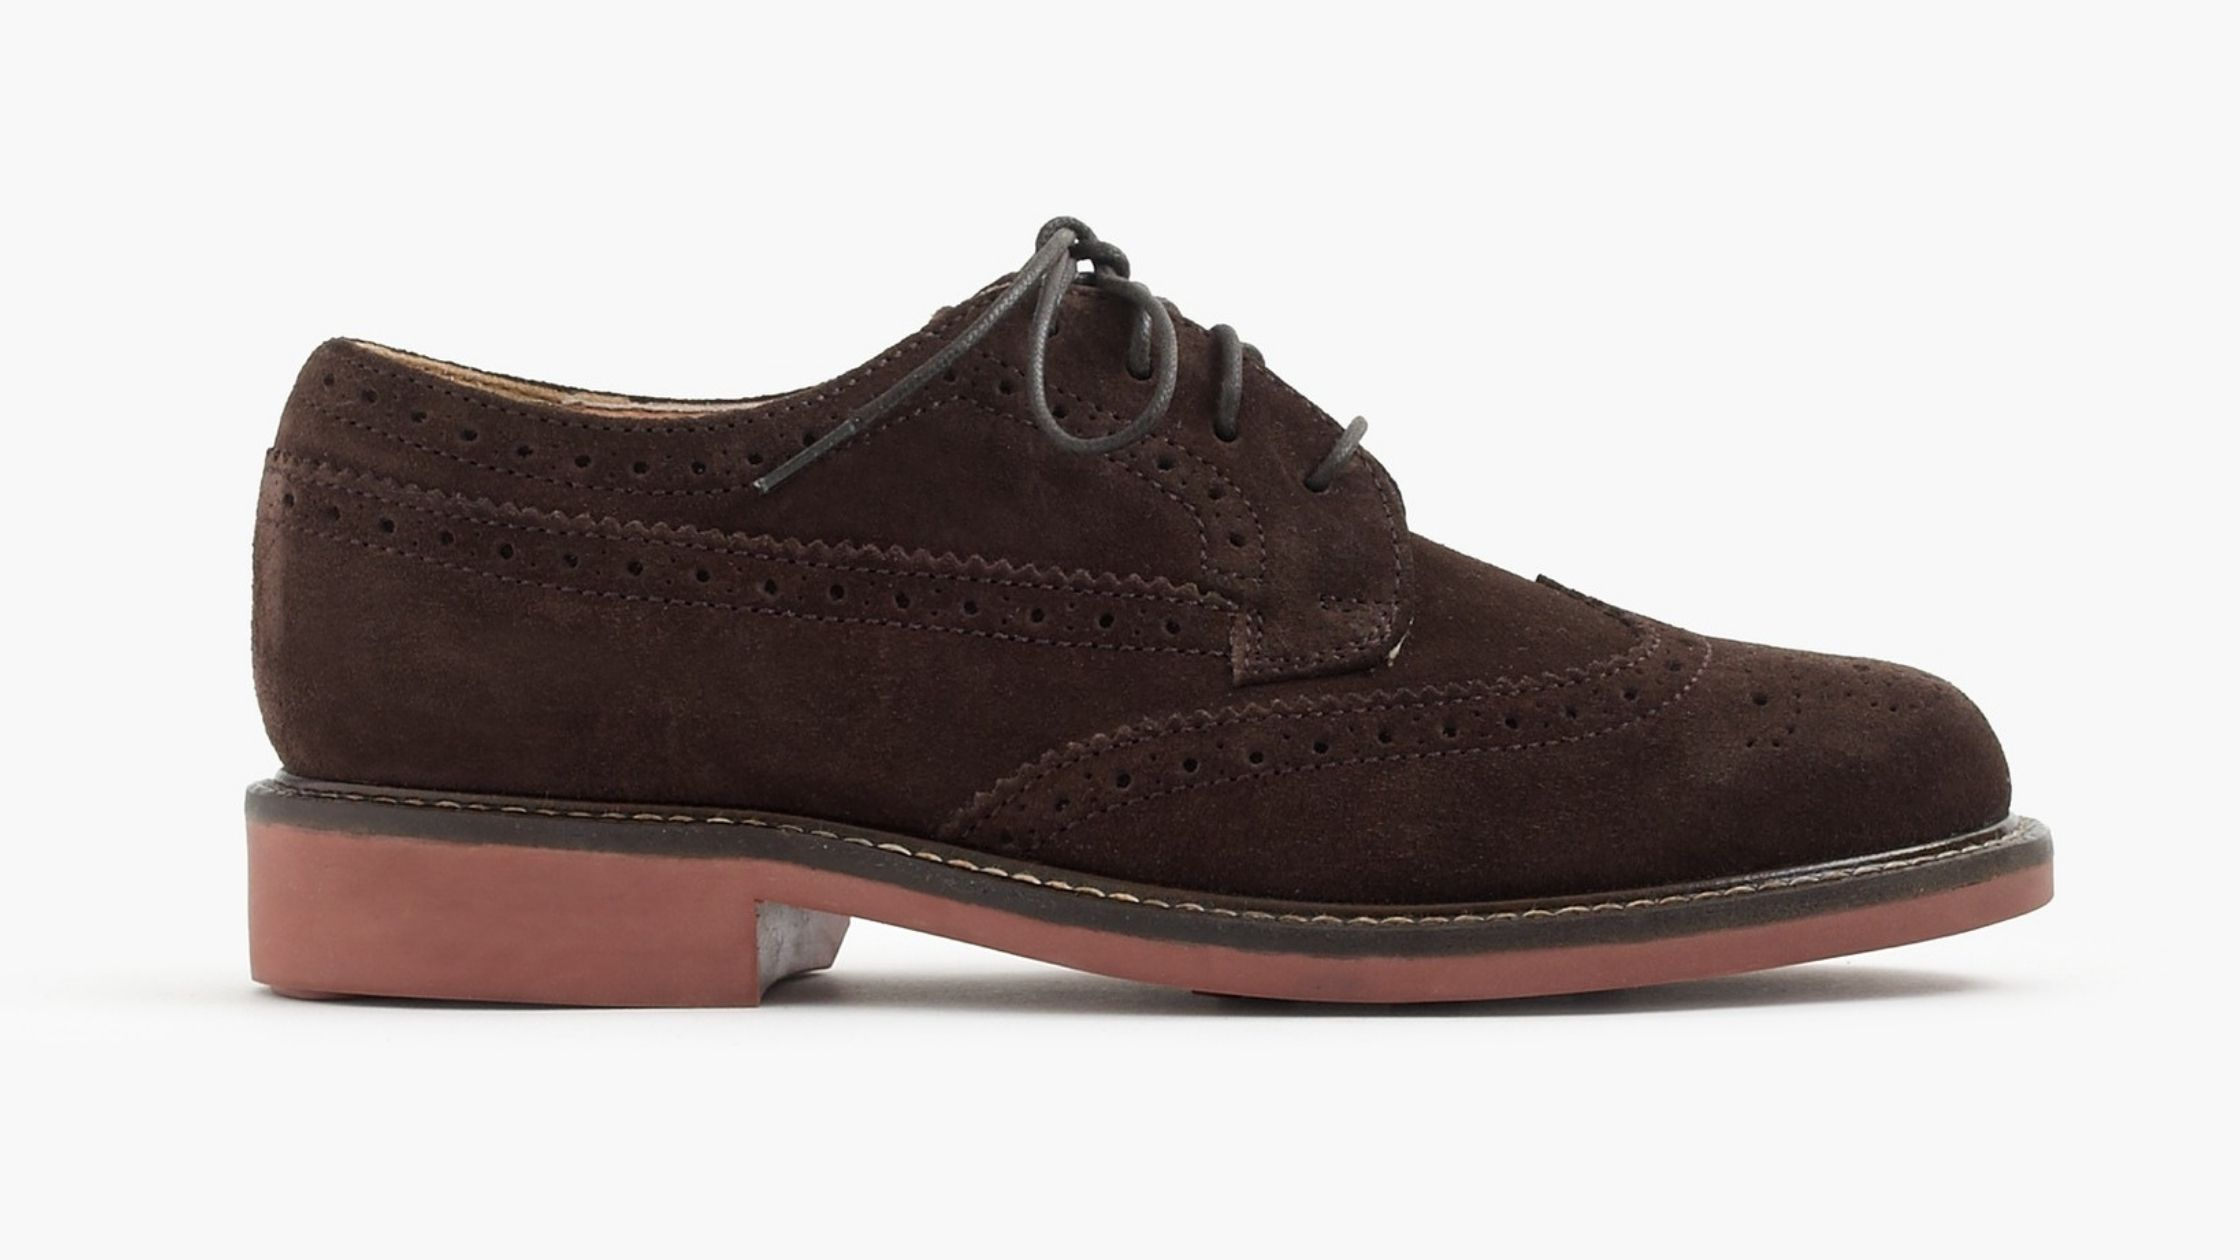 How To Stretch Suede Shoes Wider